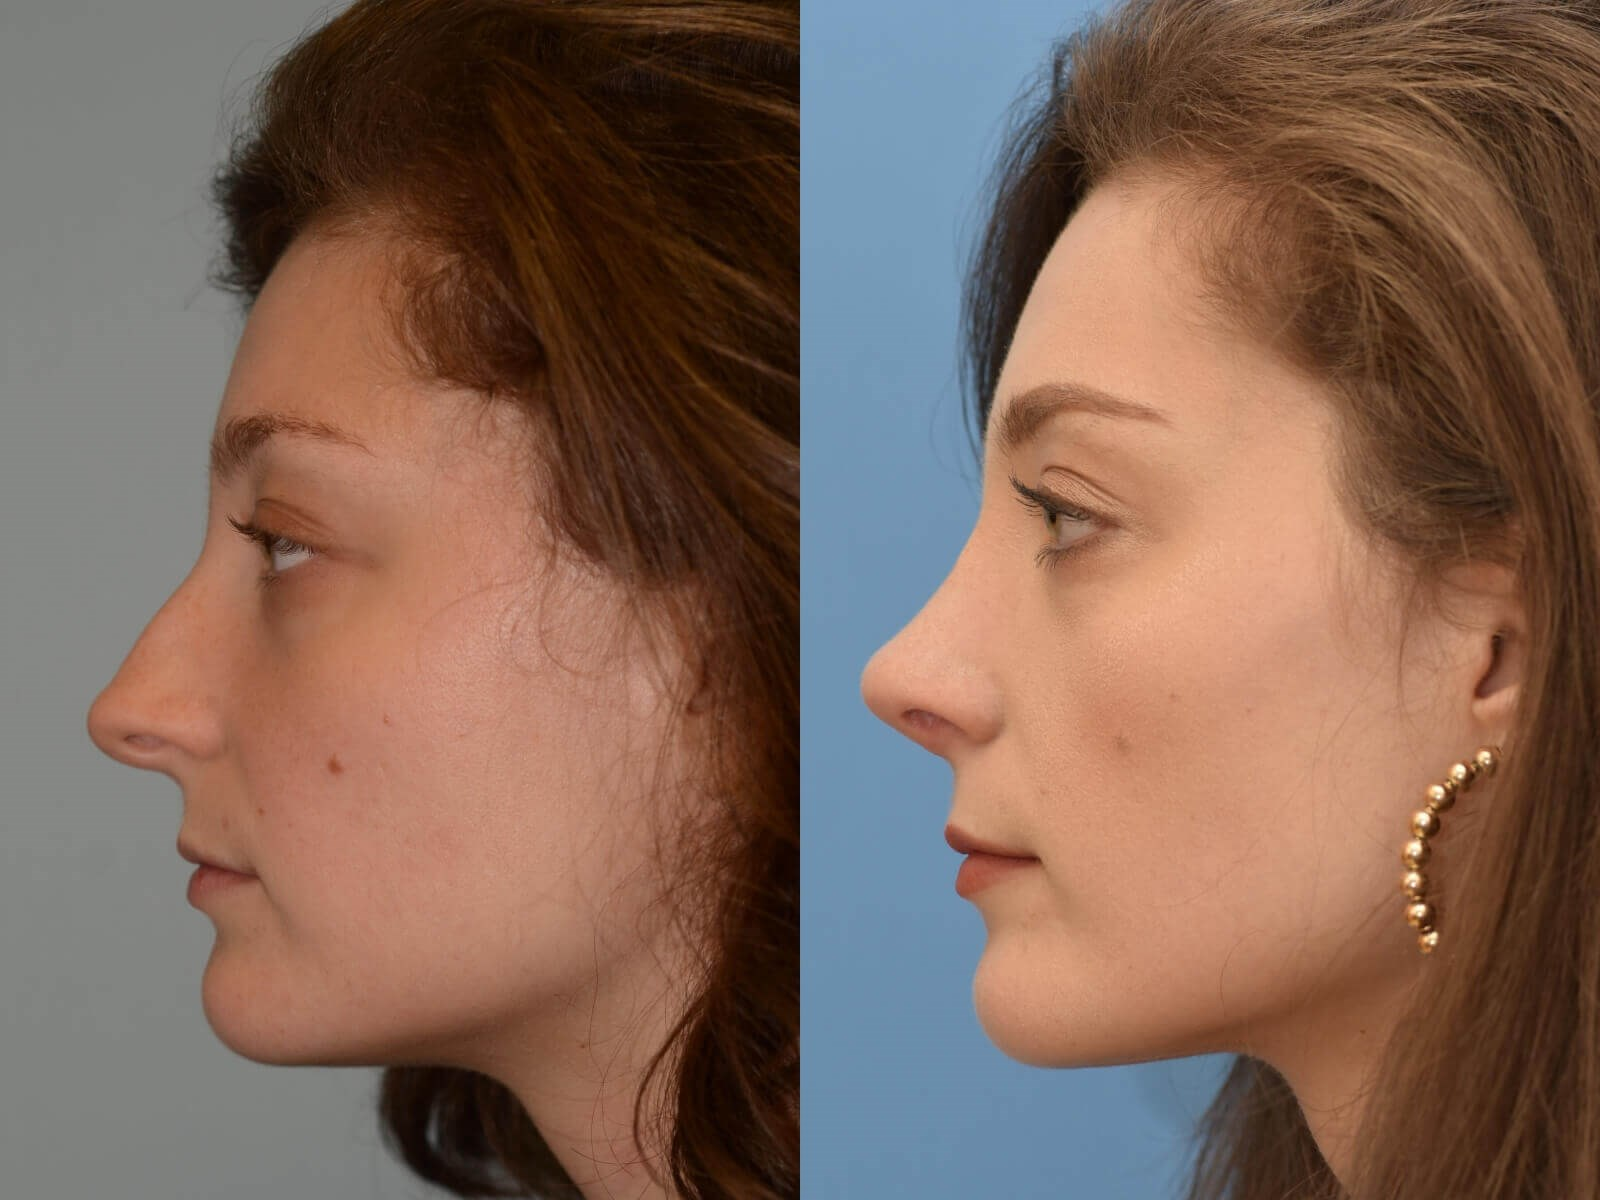 Soft feminine nasal slope Before and After